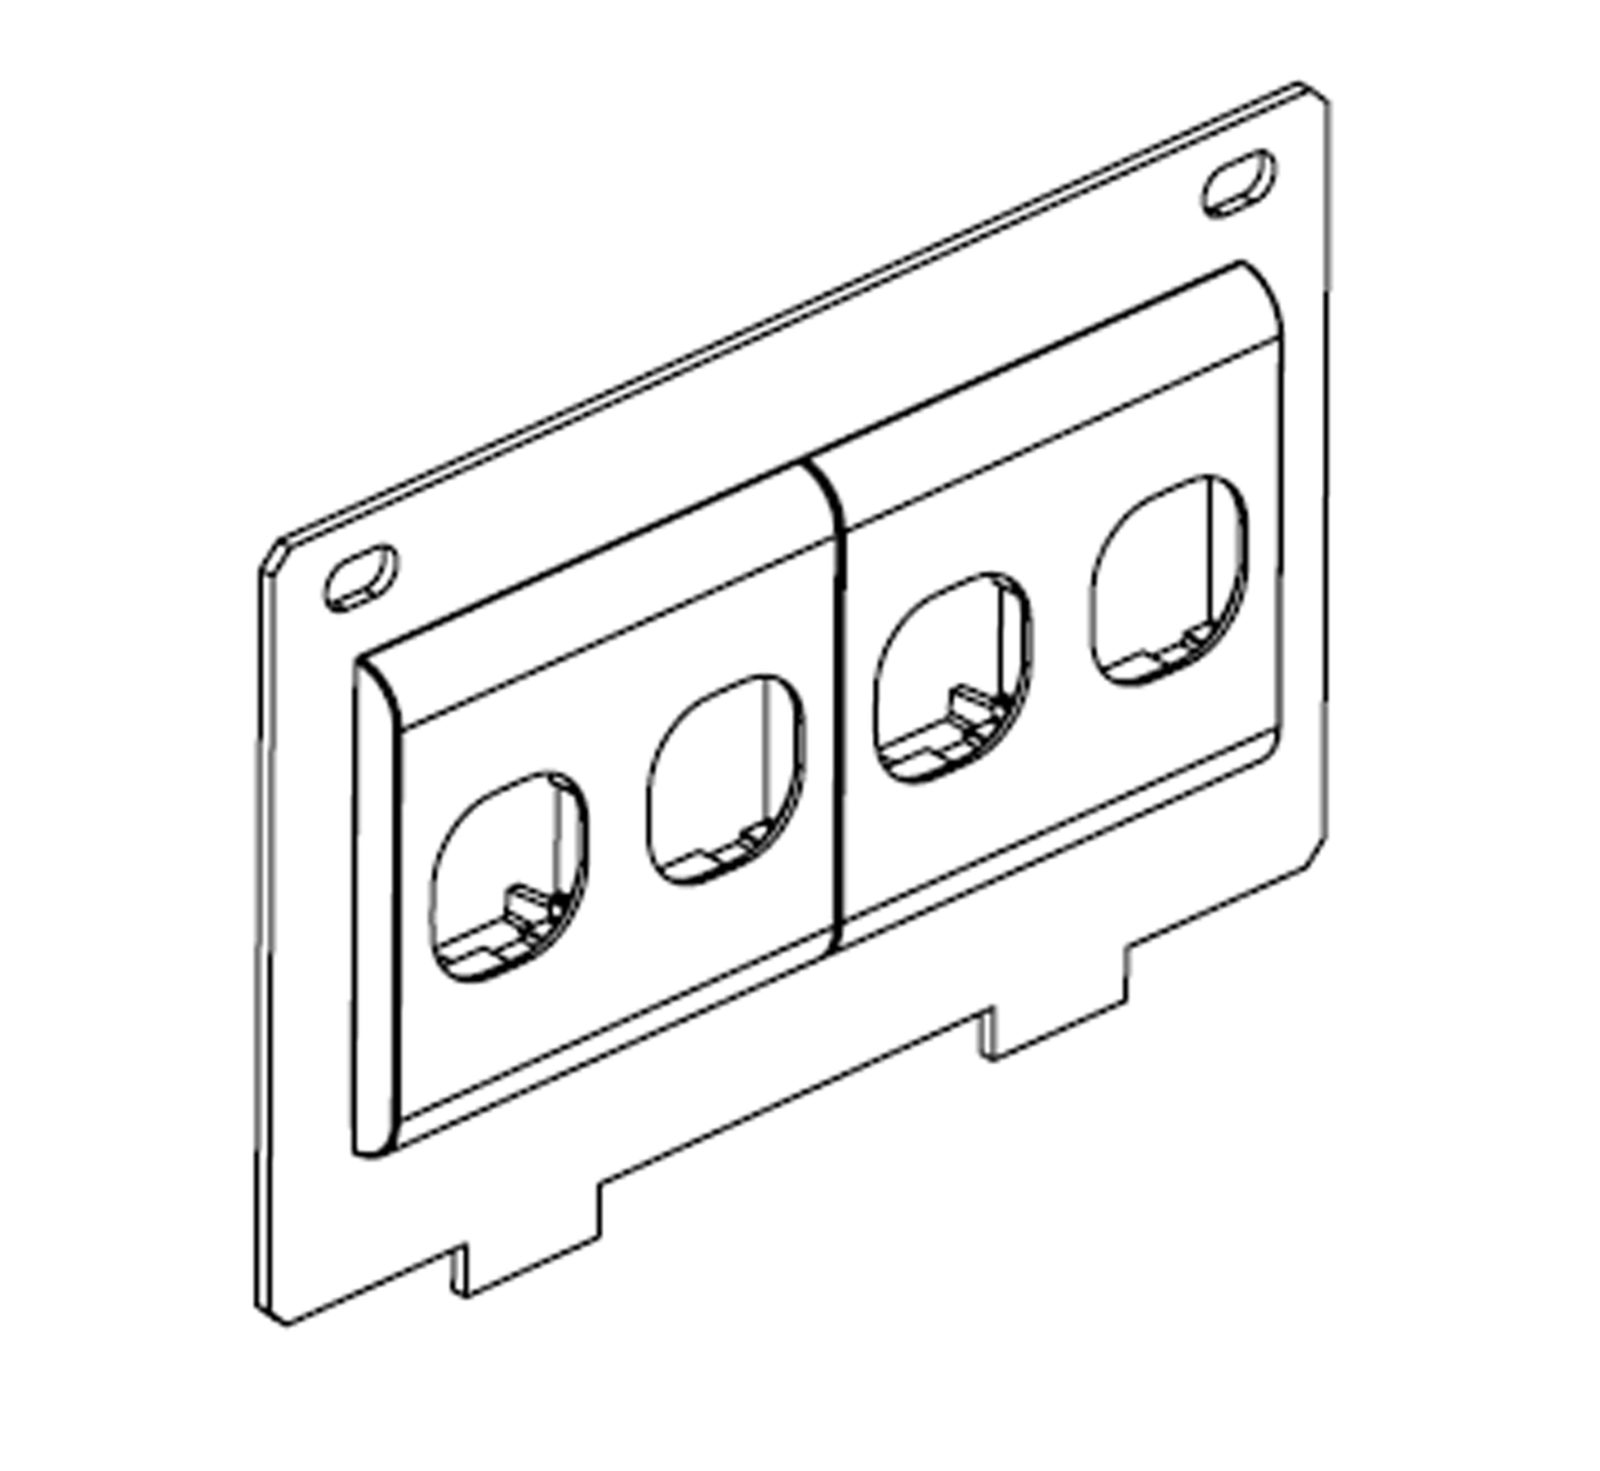 Adapter Plate To Suit 2 X 50mm Dual Tiles 4 X Data